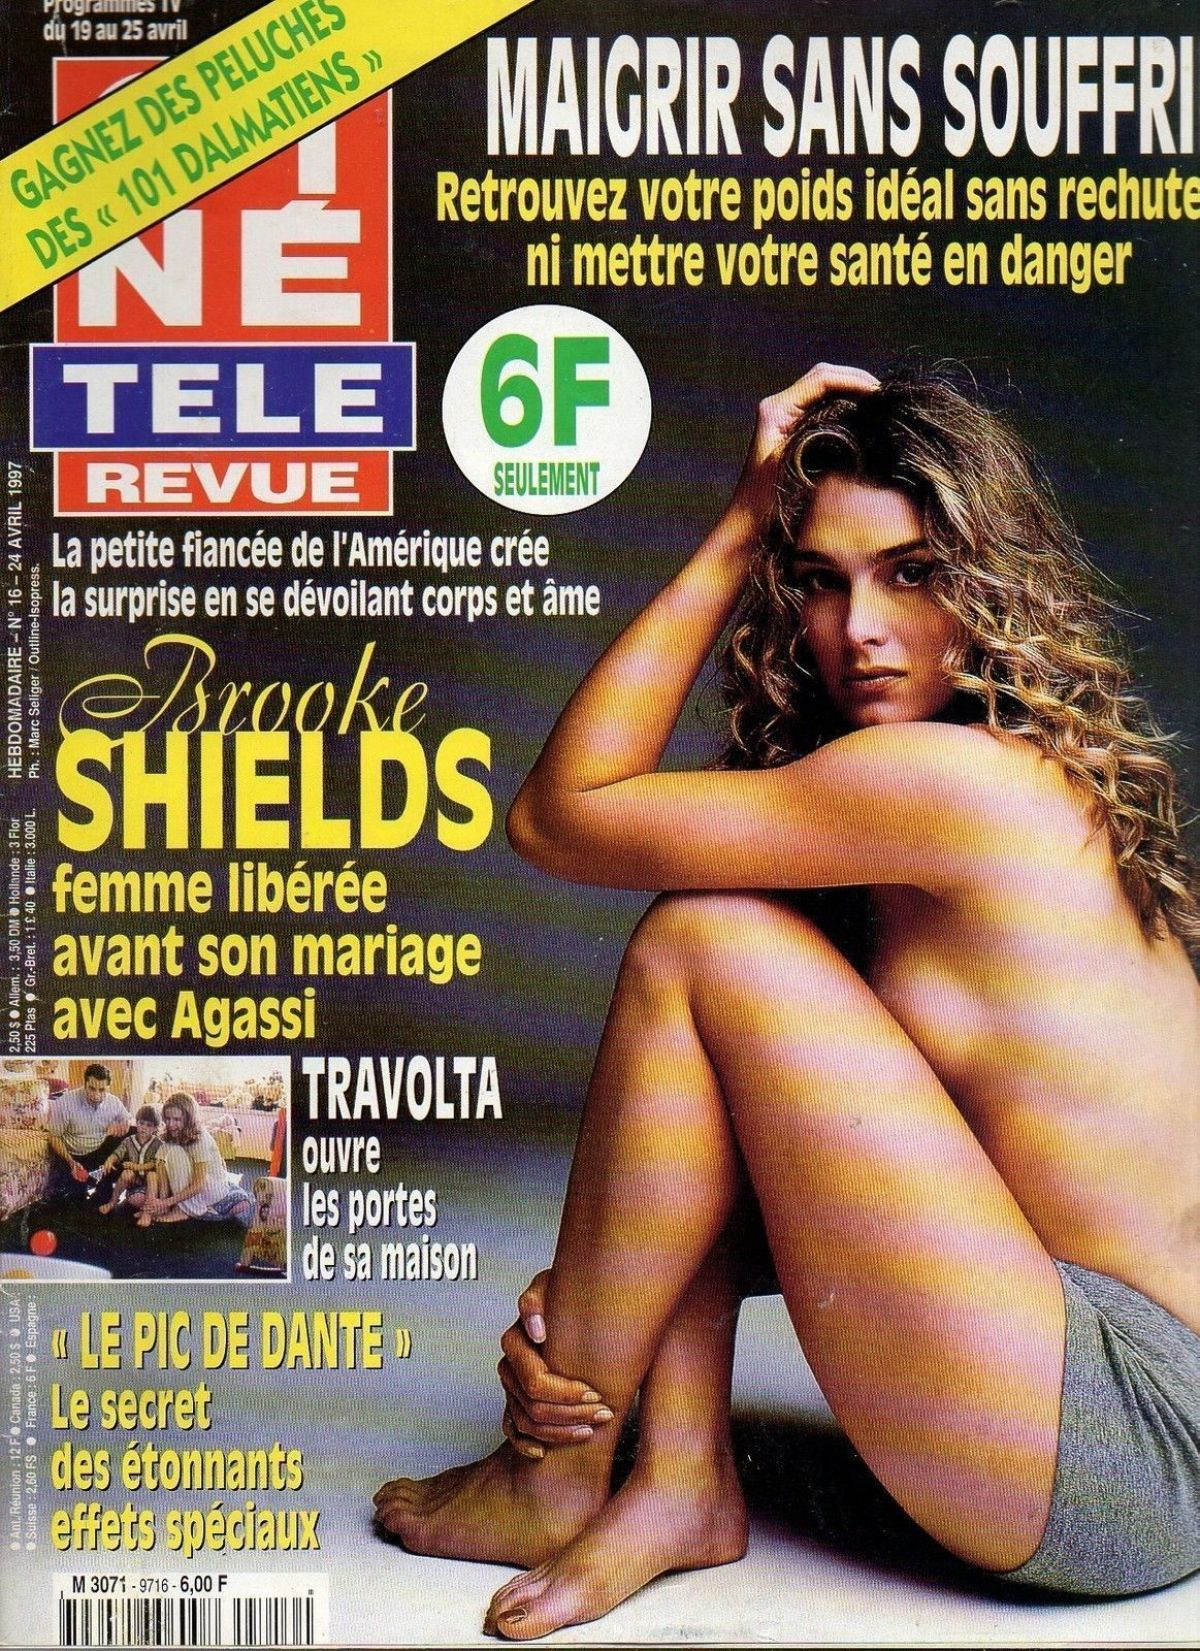 Best from the Past - BROOKE SHUELDS in Cine Tele Revue, April 1997